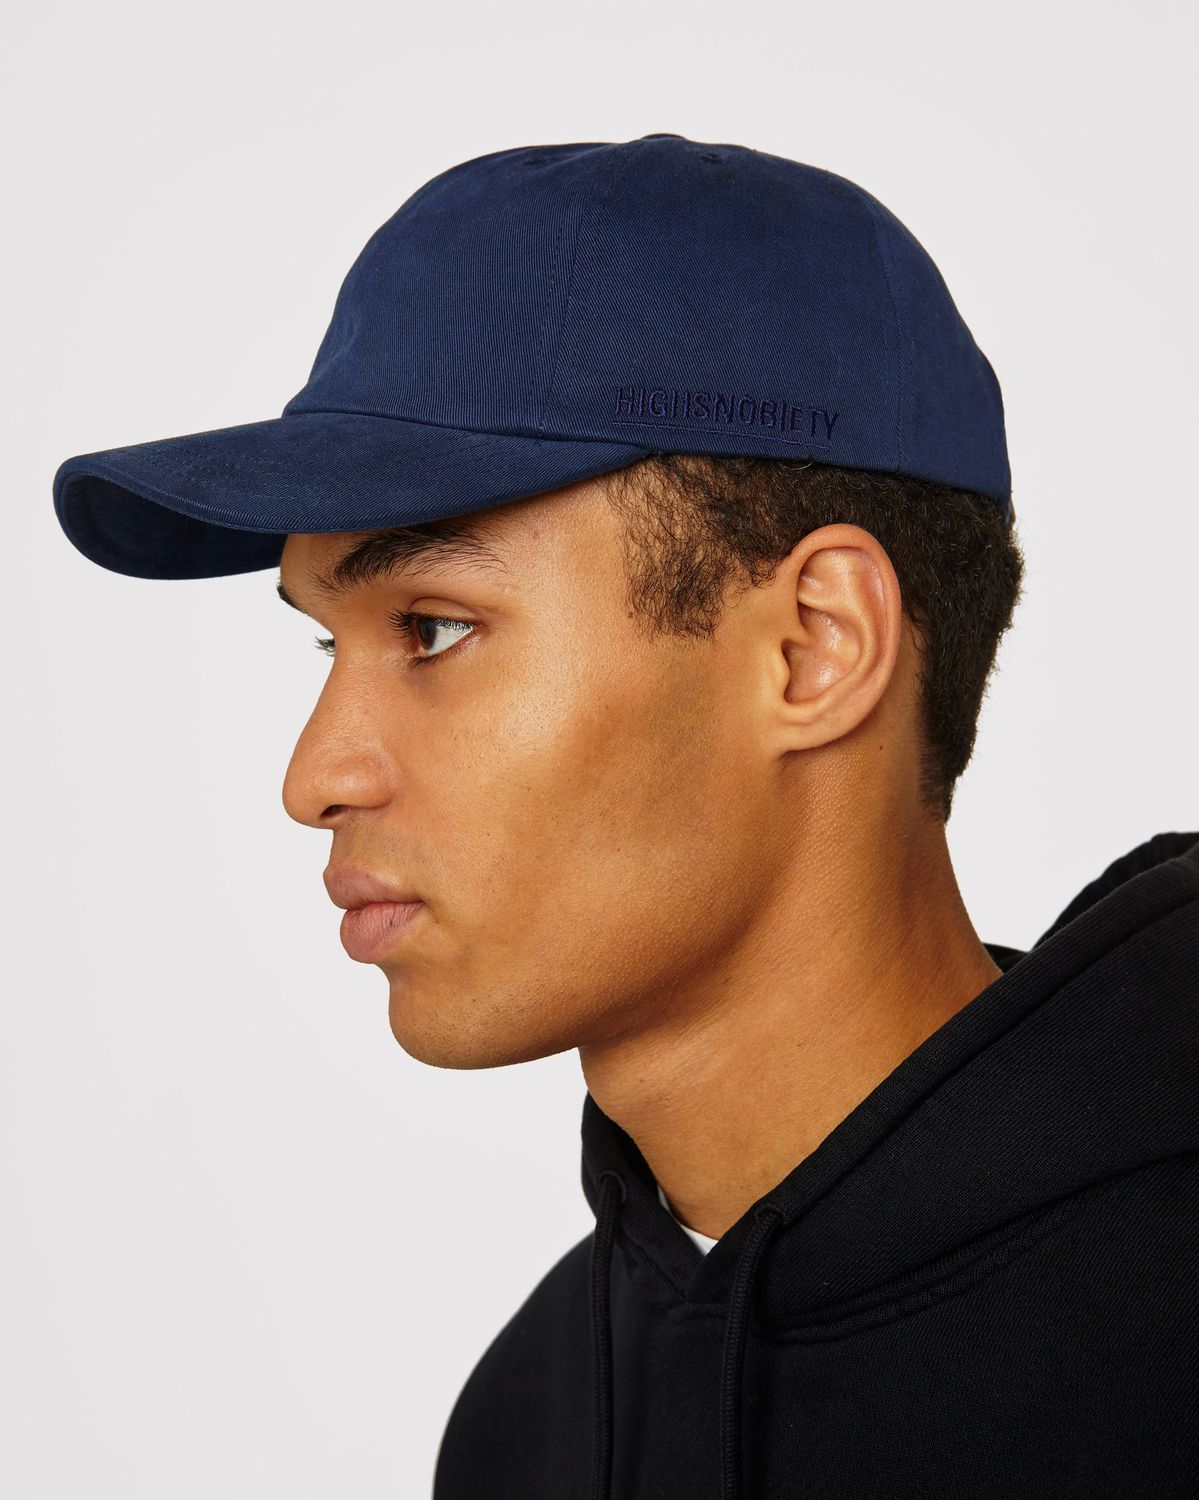 Highsnobiety Staples - Cap Navy - Image 5